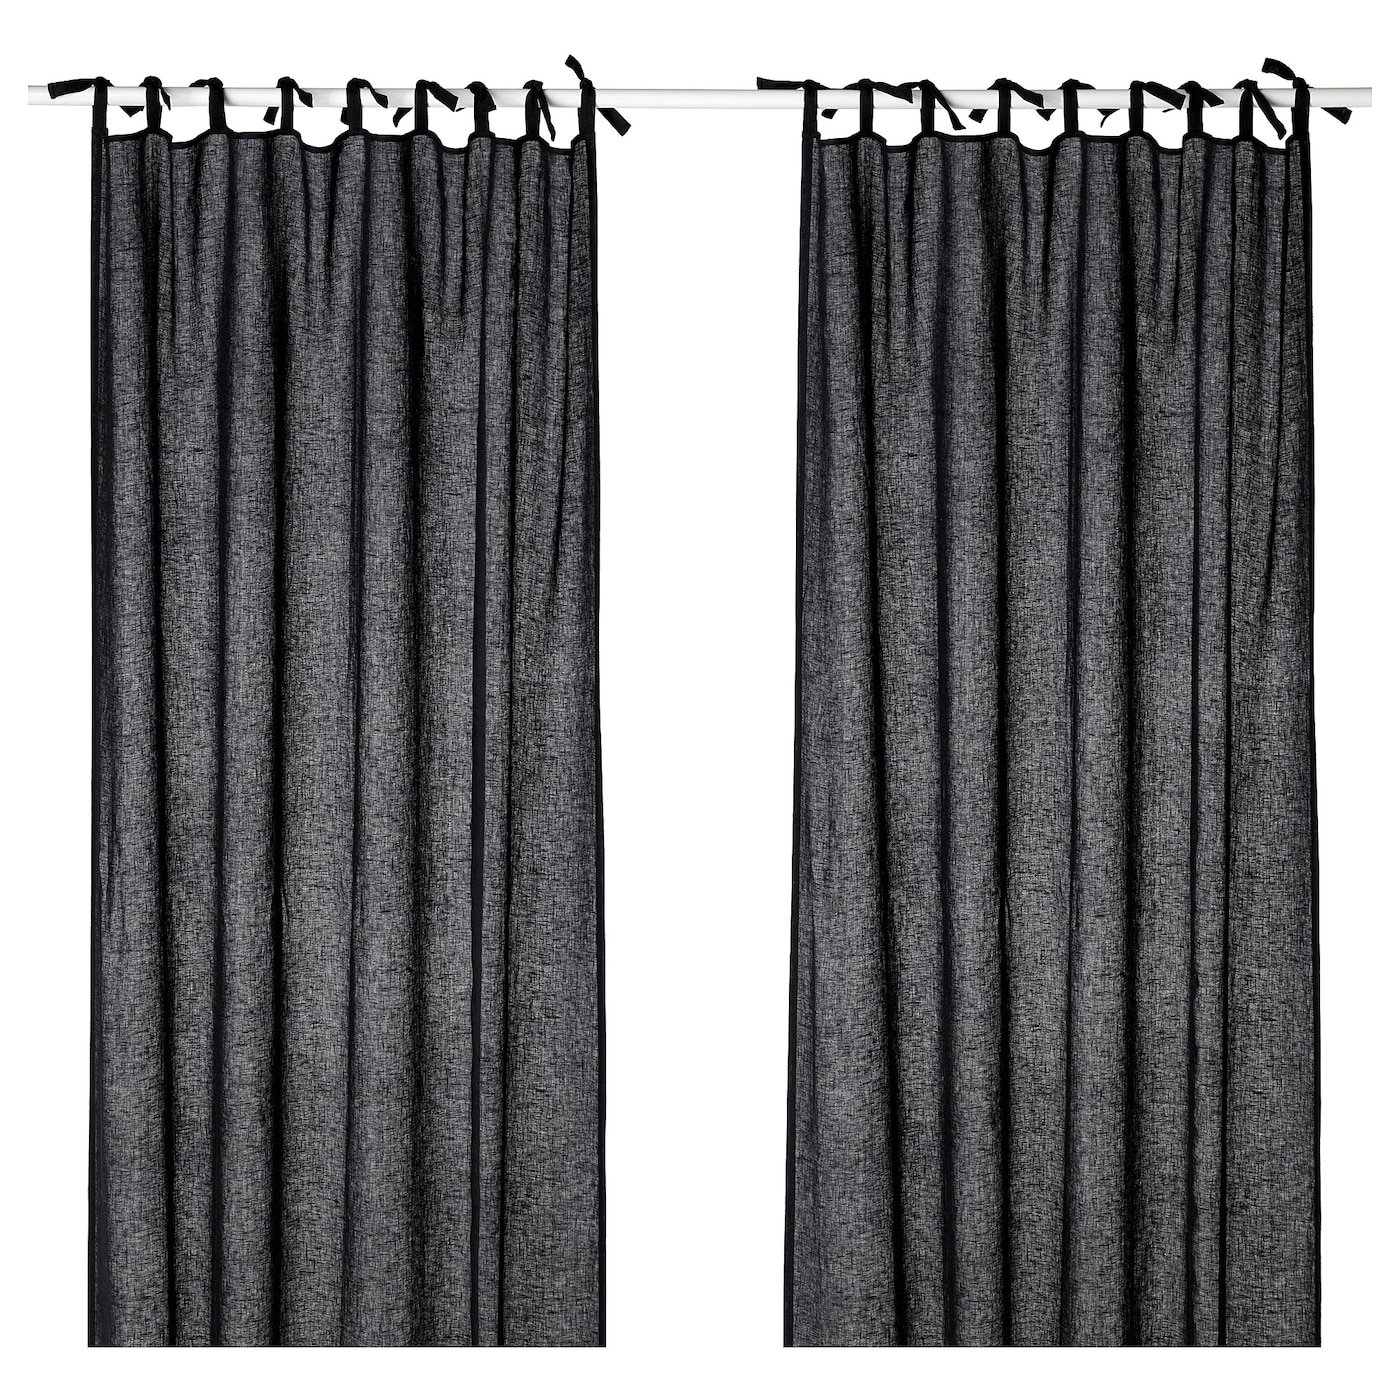 Ikea Jofrid Curtains 1 Pair Linen Is Strong And Durable Gets Softer After Washing